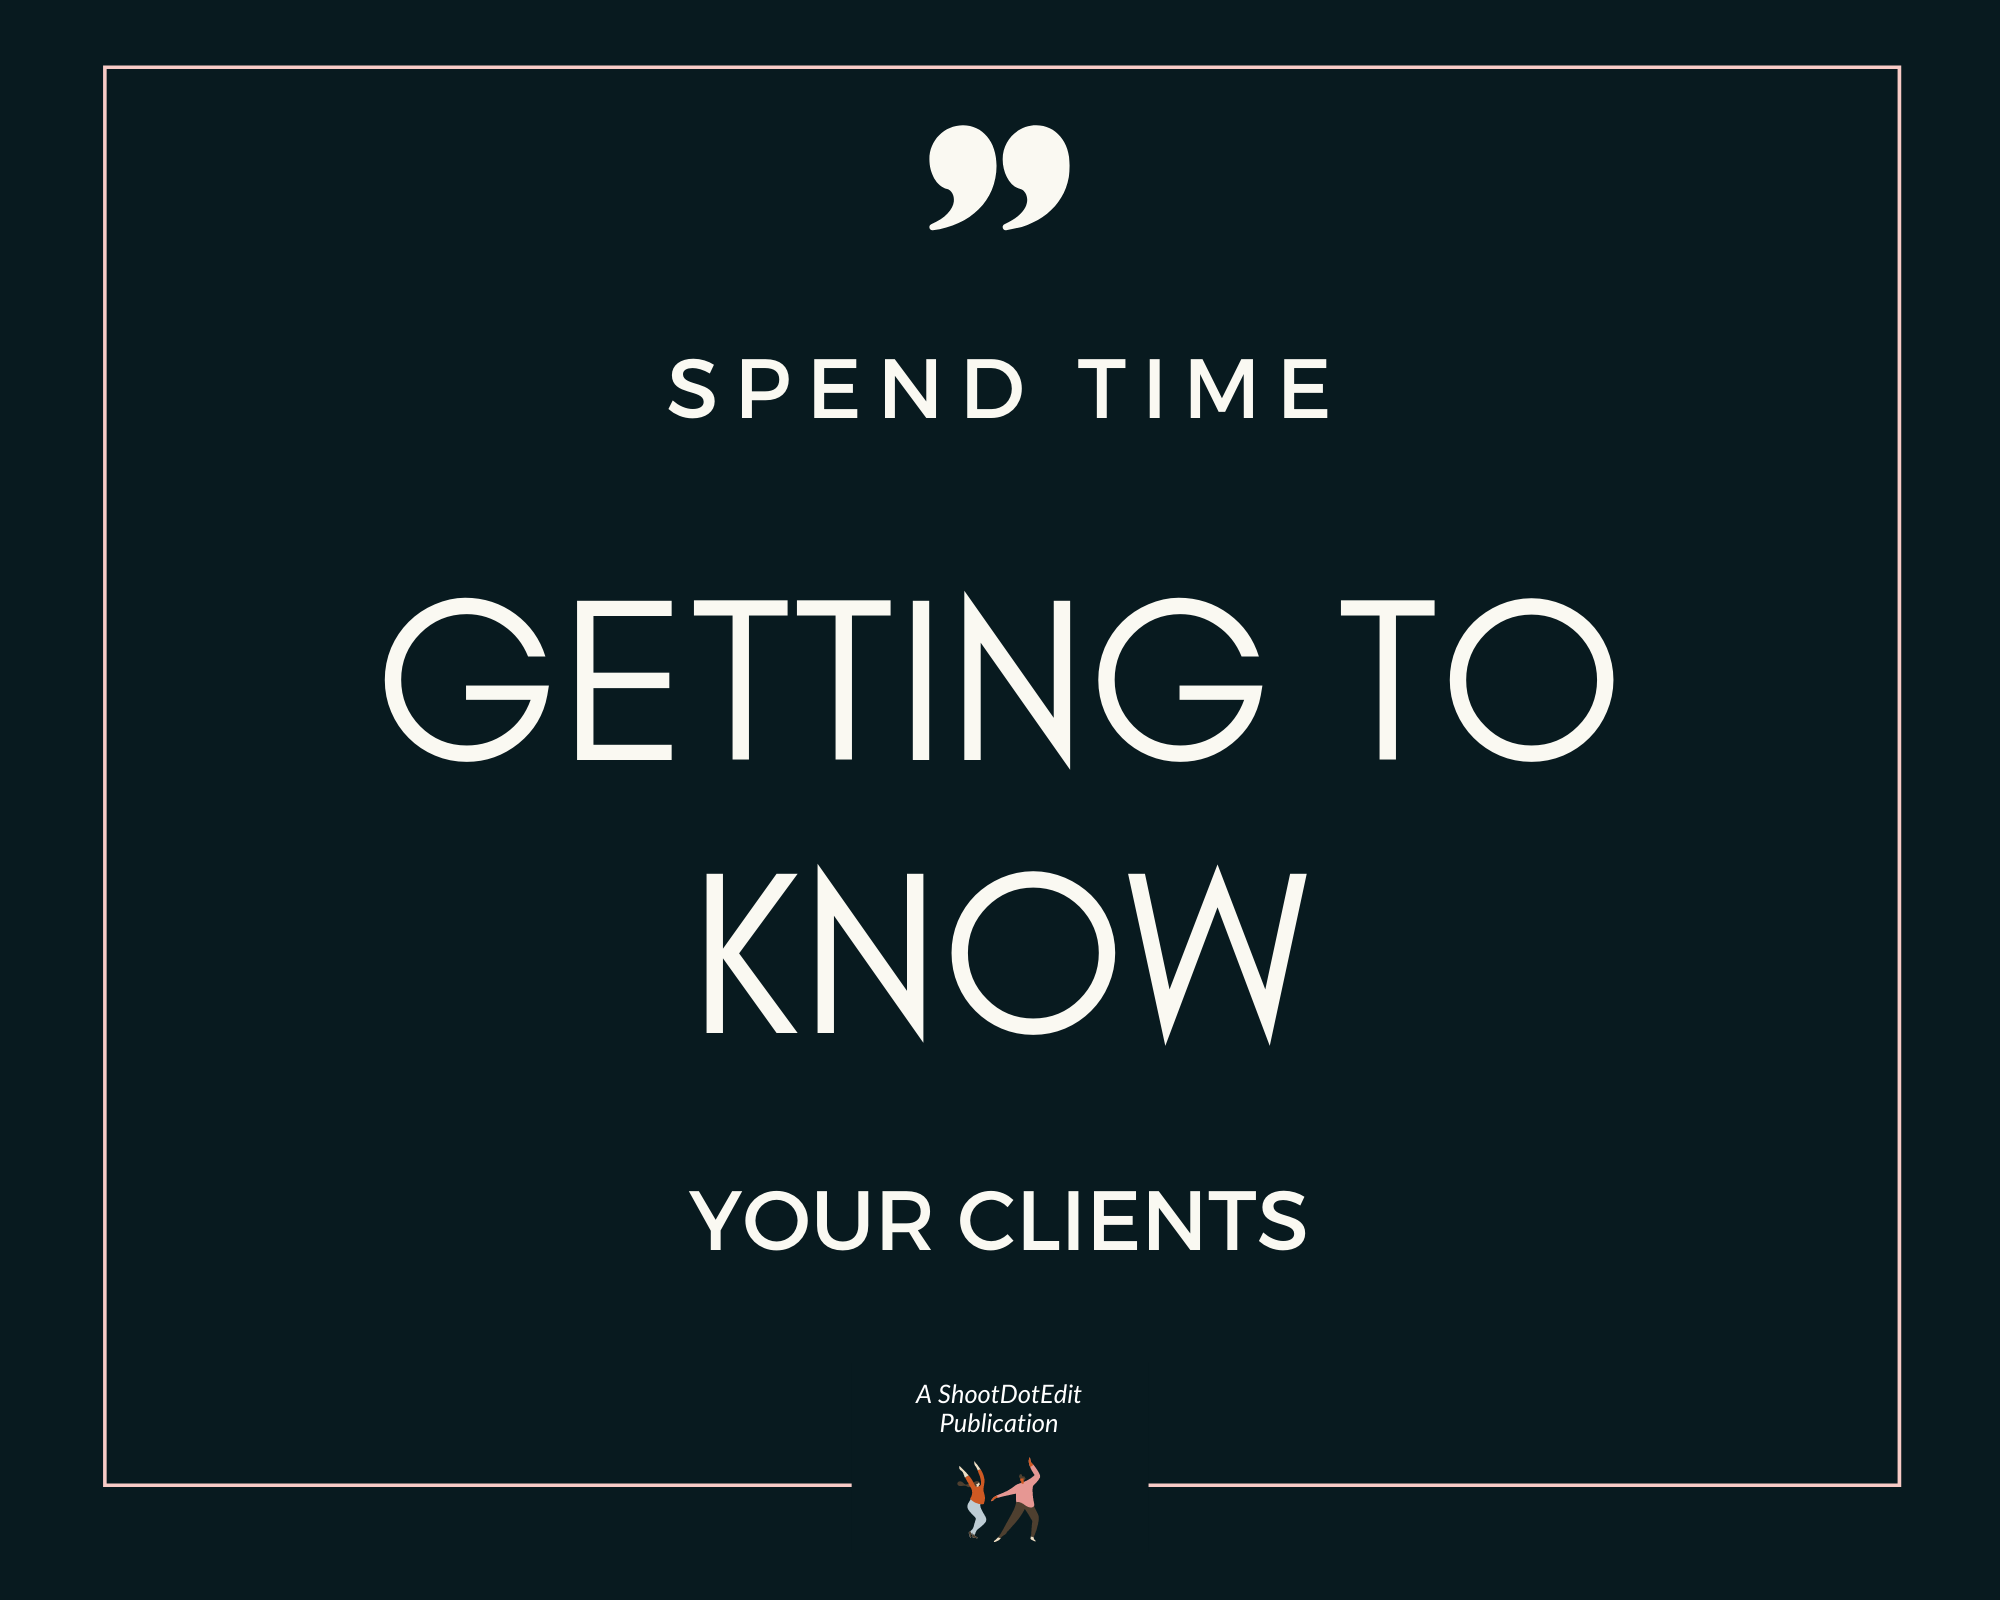 Infographic - Spend time getting to know your clients